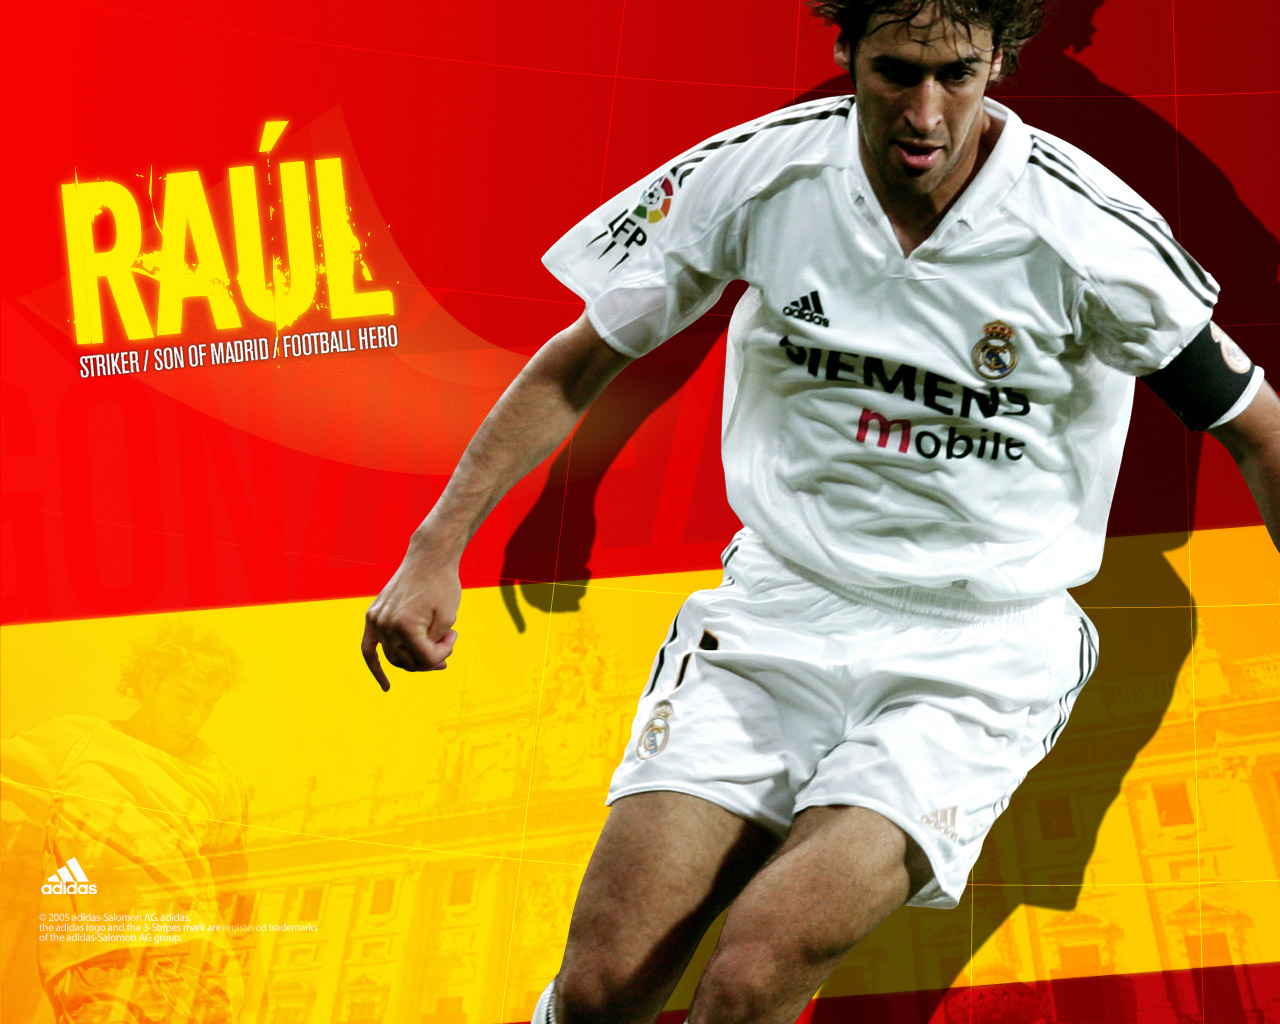 Raul Gonzales Real Madrid Player Wallpaper